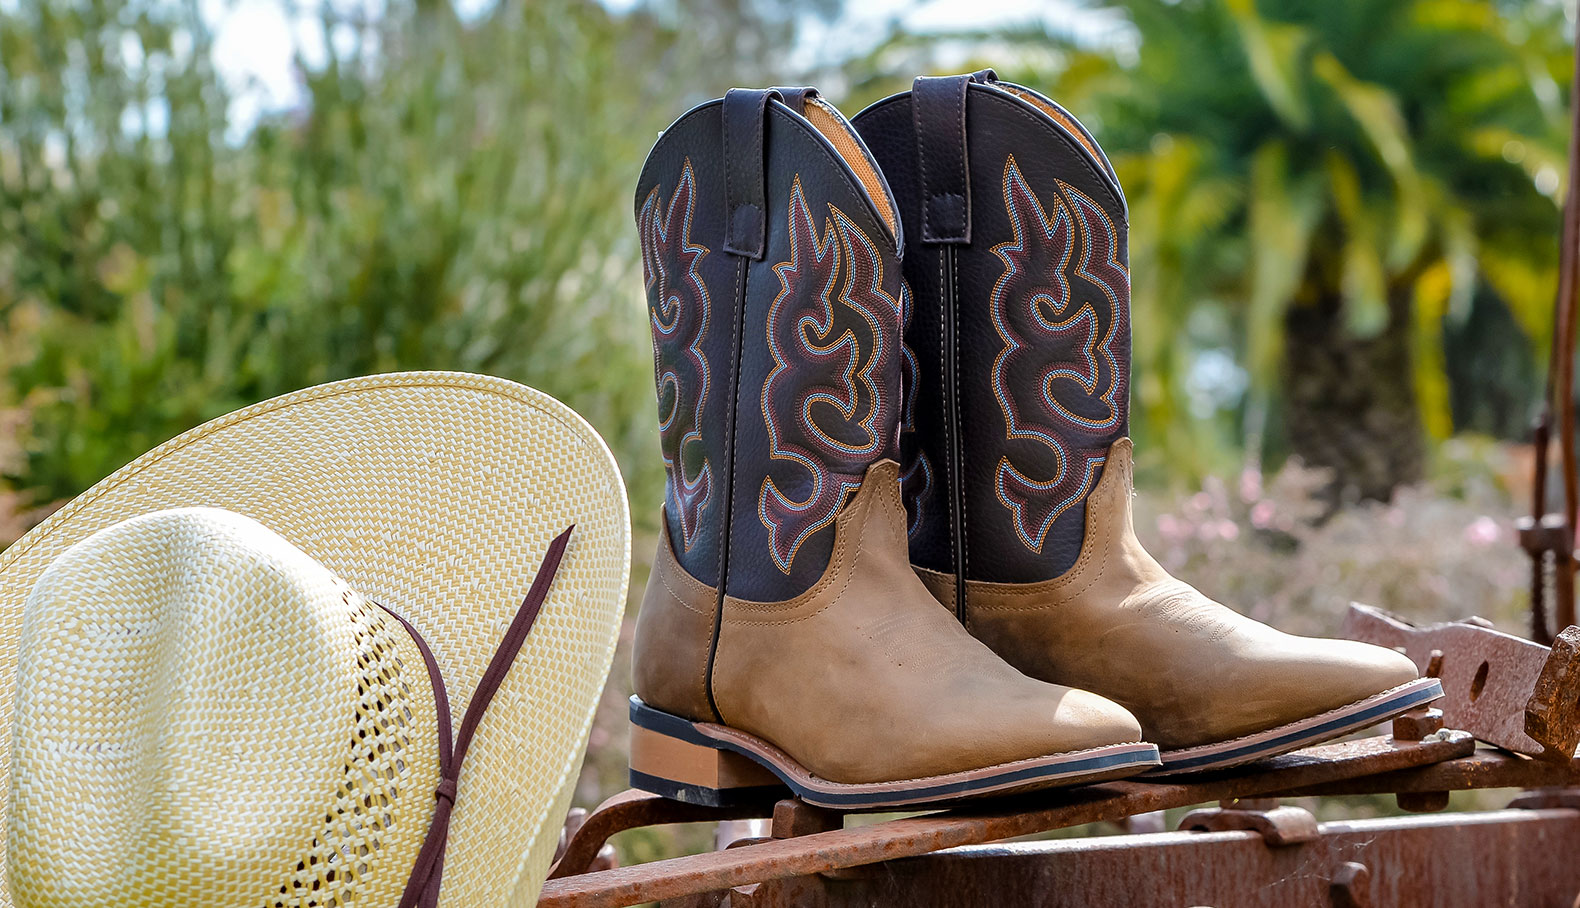 price styles rider all boots